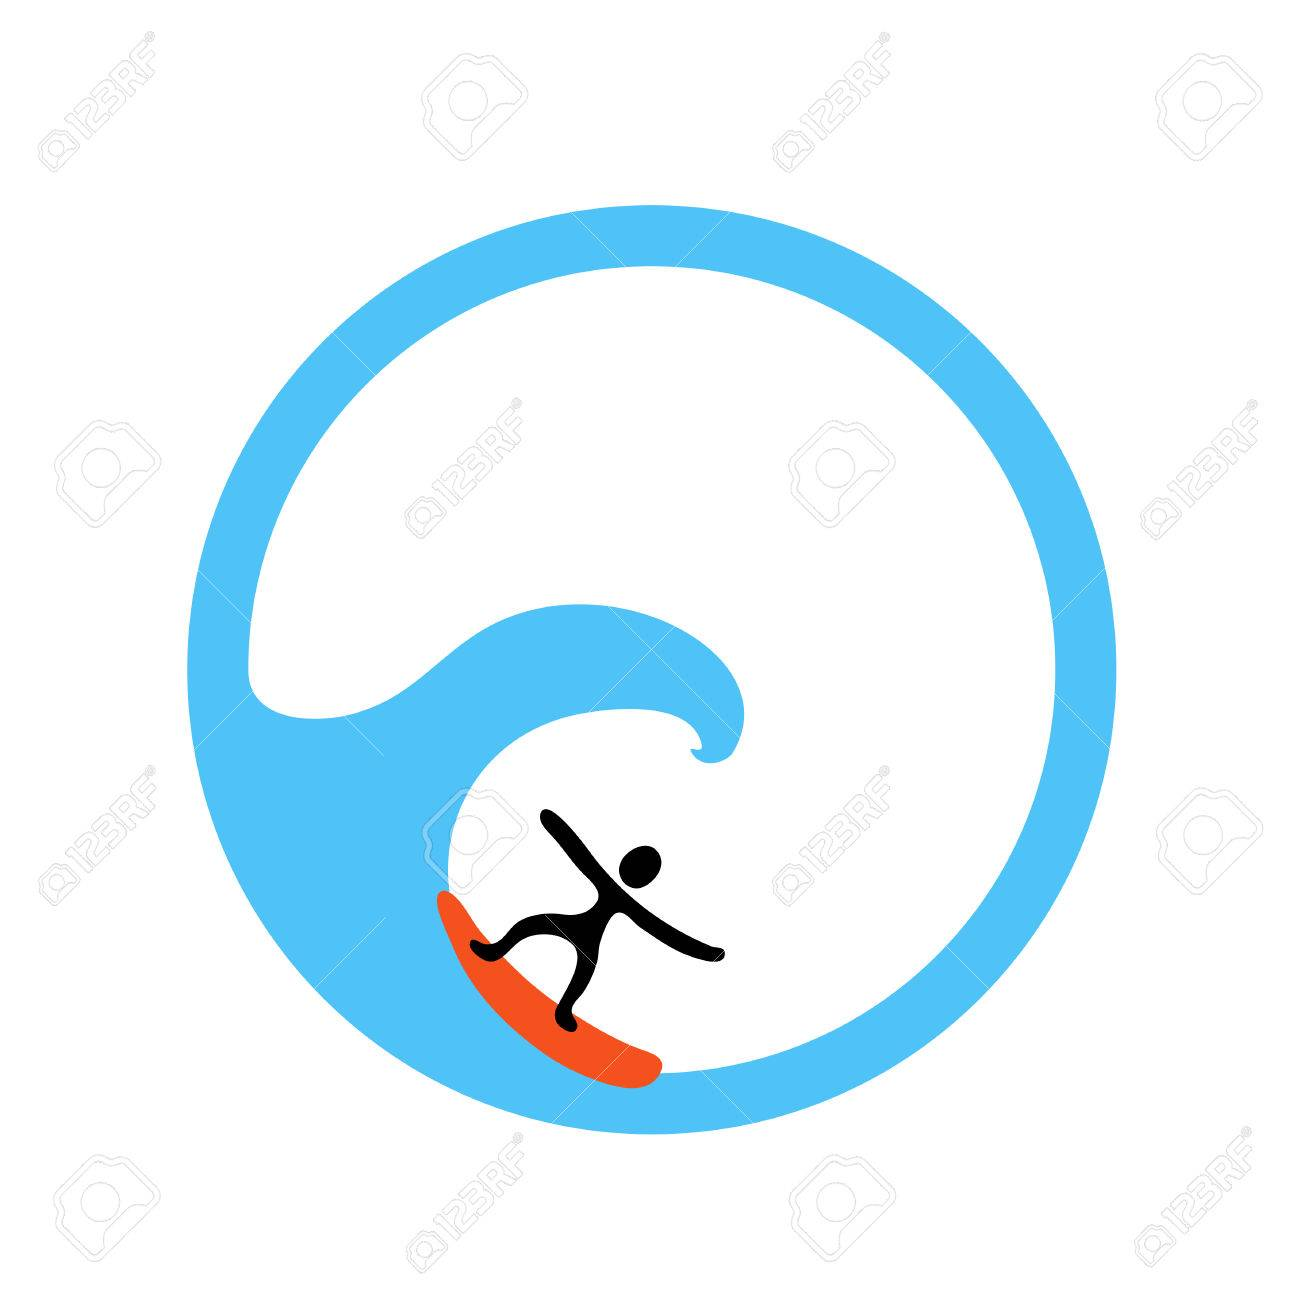 surfer and the wave vector icon illustration royalty free cliparts rh 123rf com wavevector spectrum wave vector art